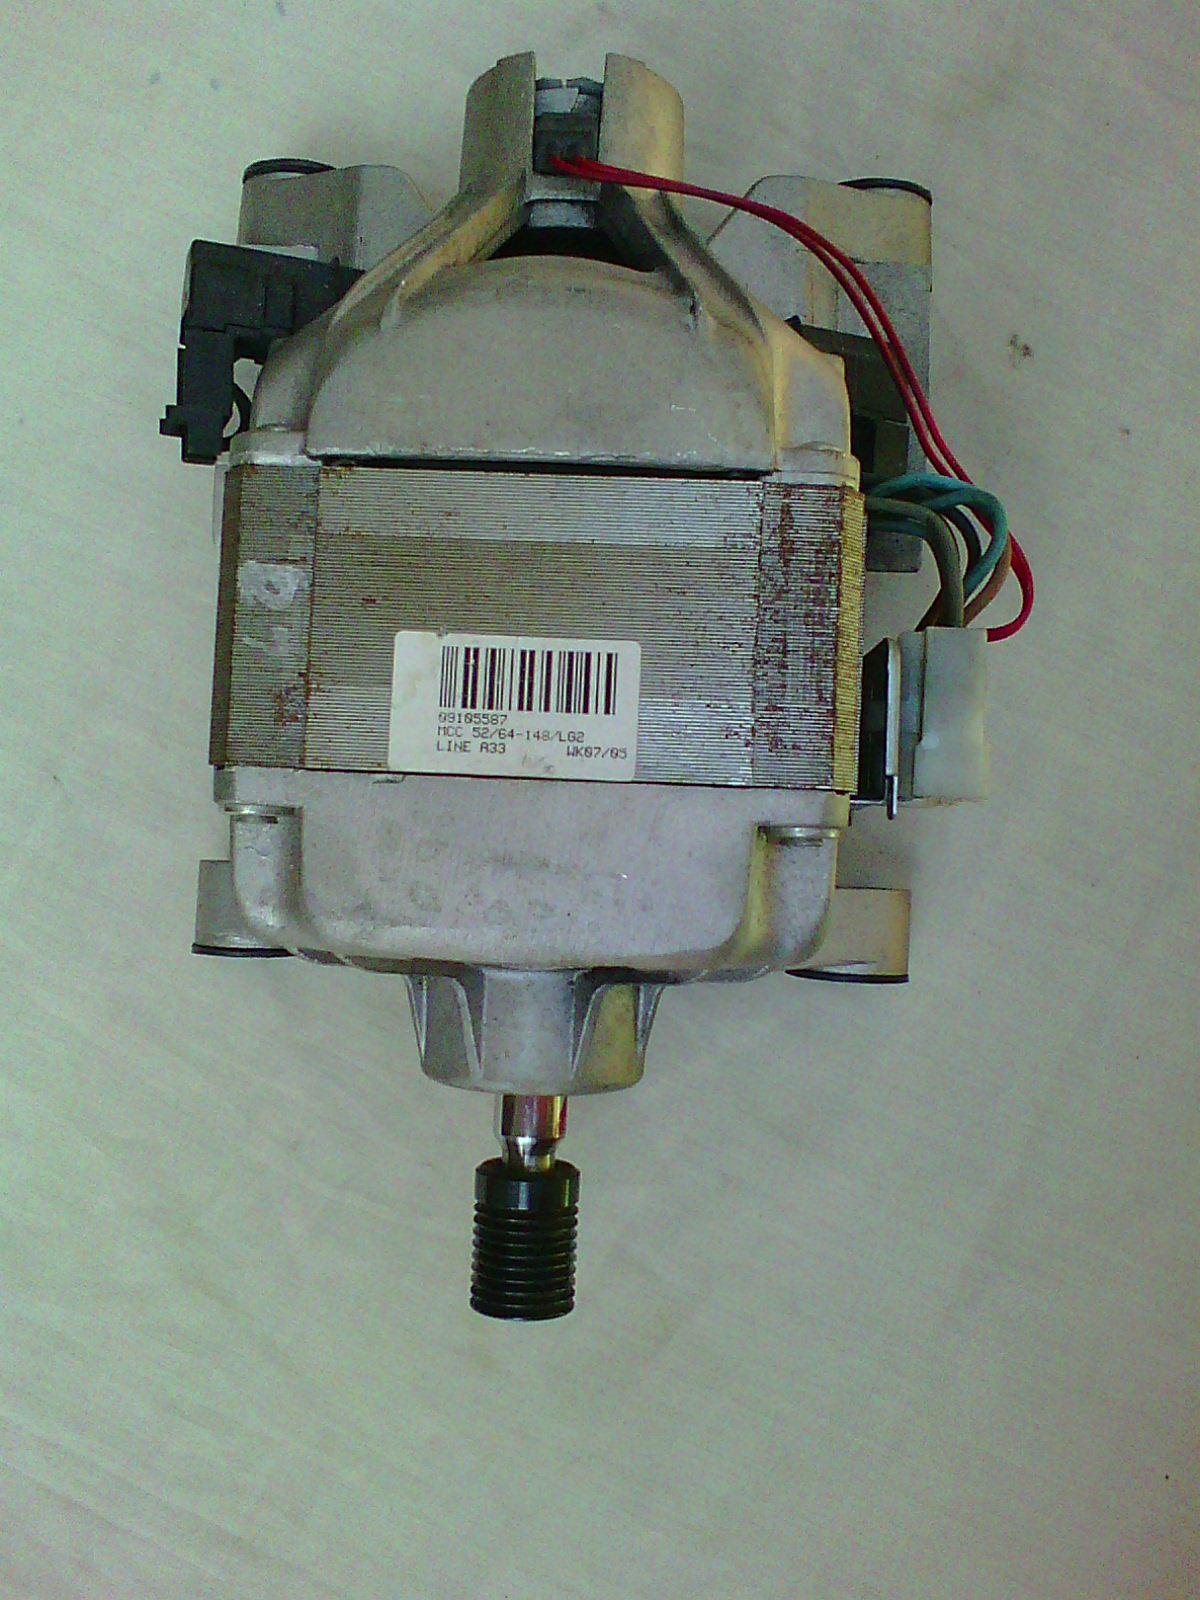 LG MOTOR for a Front loading washing machine.